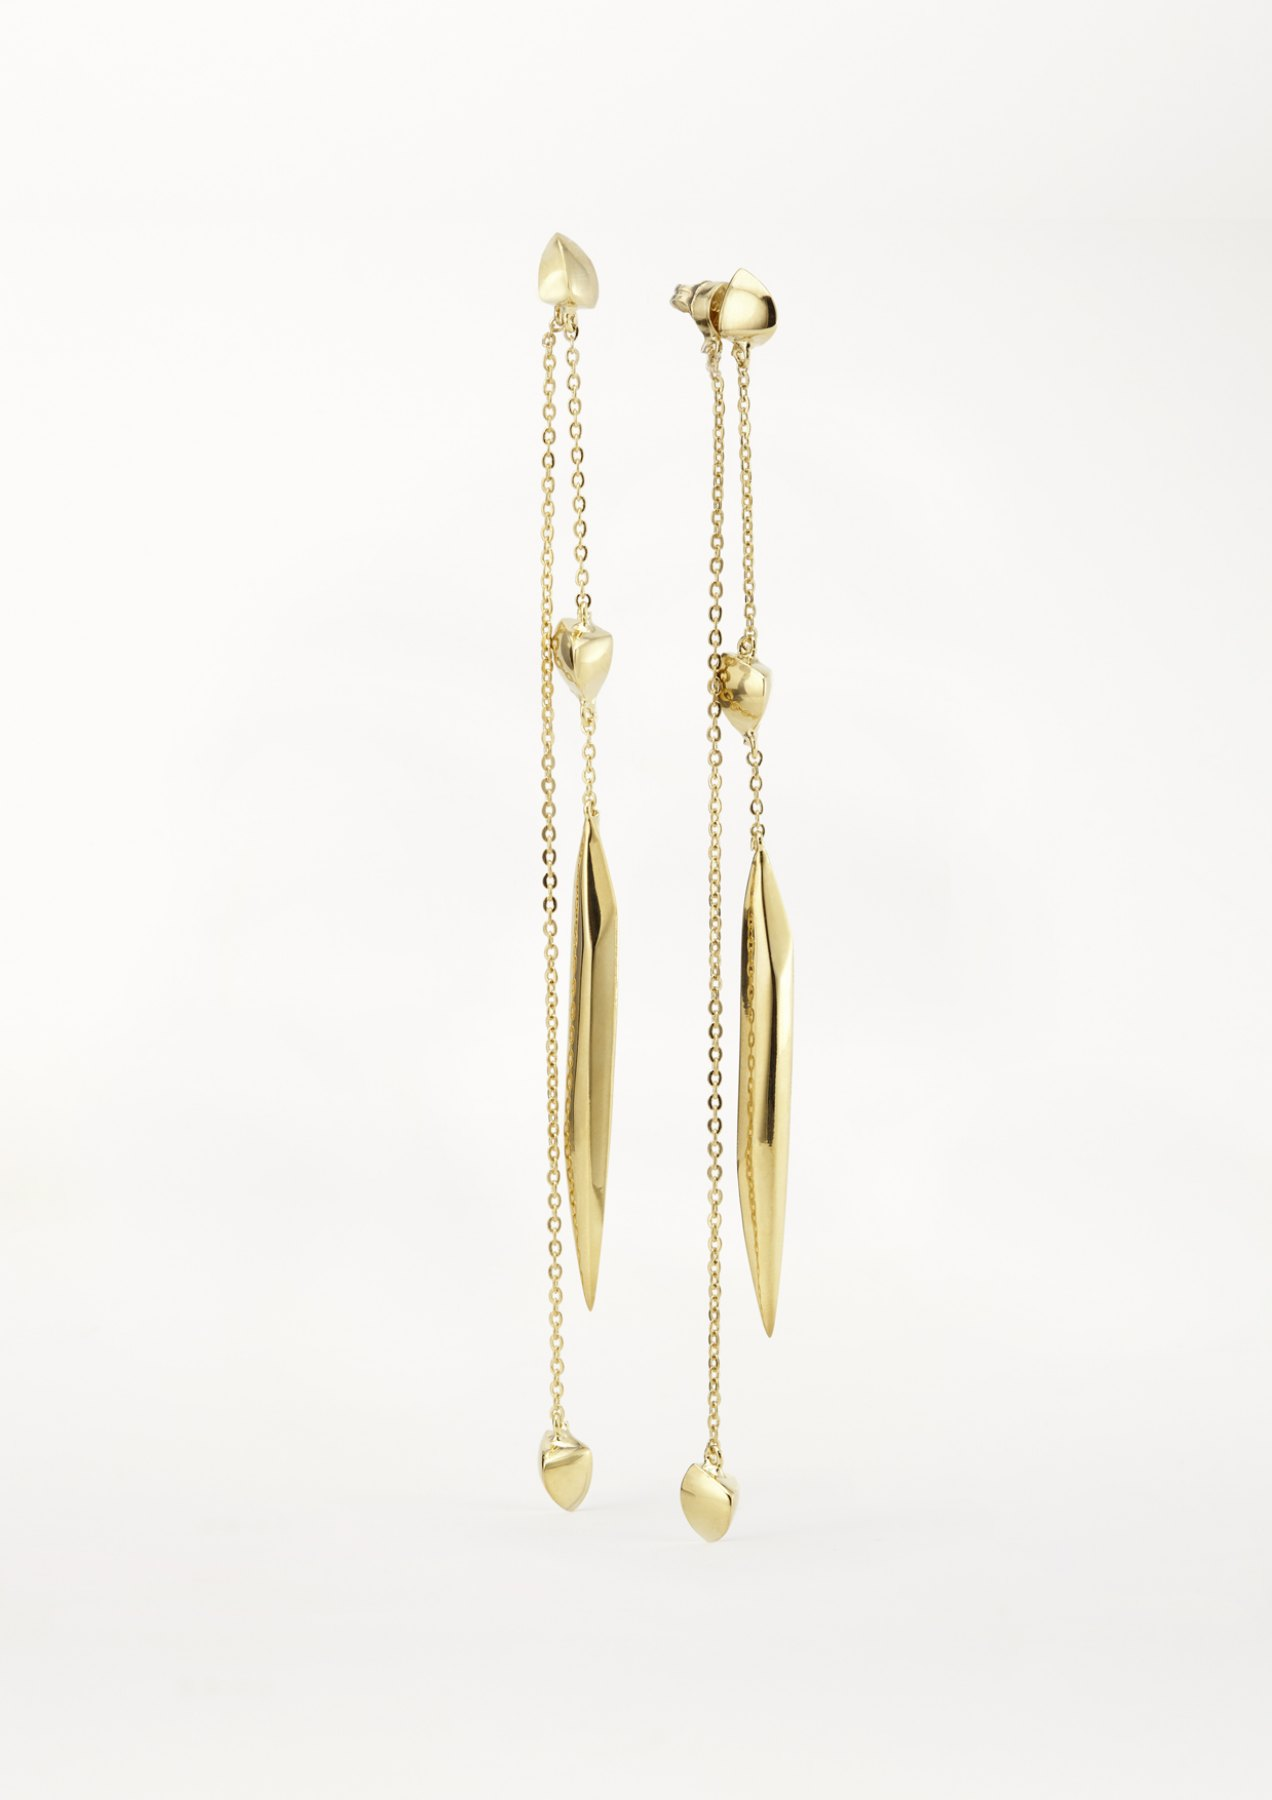 xenia bous jewellery washed stone 04 pendulum stone earrings earrings gold